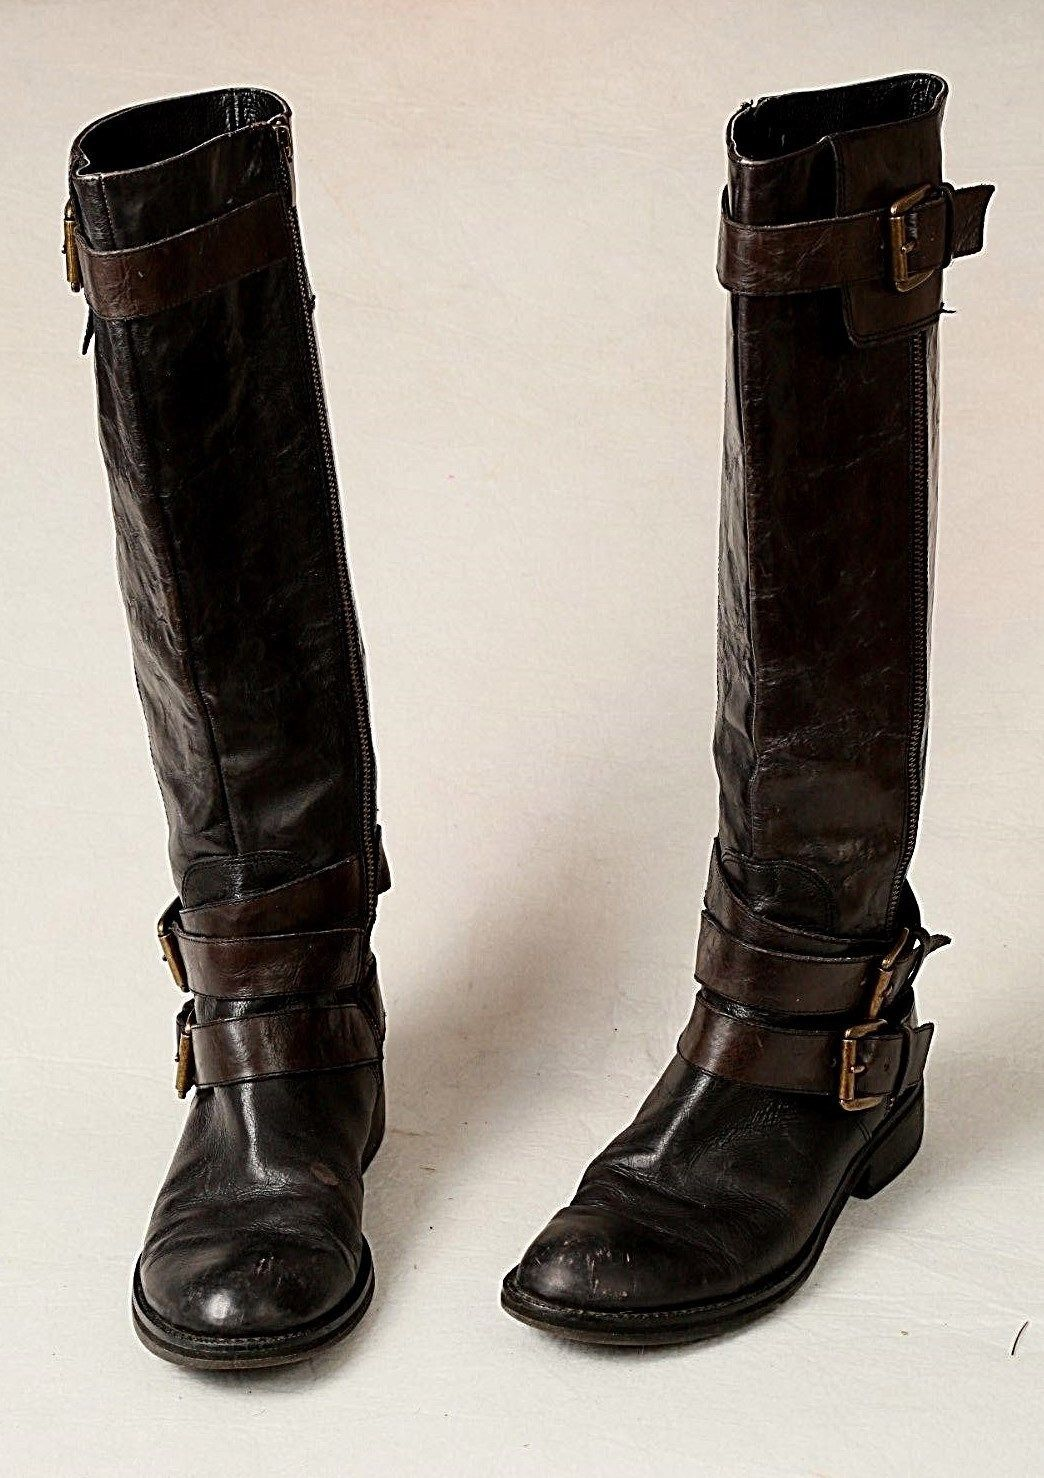 2270bcd64734 S l1600. S l1600. Previous. ENZO ANGIOLINI EASAYLEM WOMEN S BLACK LEATHER  SIDE ZIP RIDING BUCKLE BOOTS 7.5 M